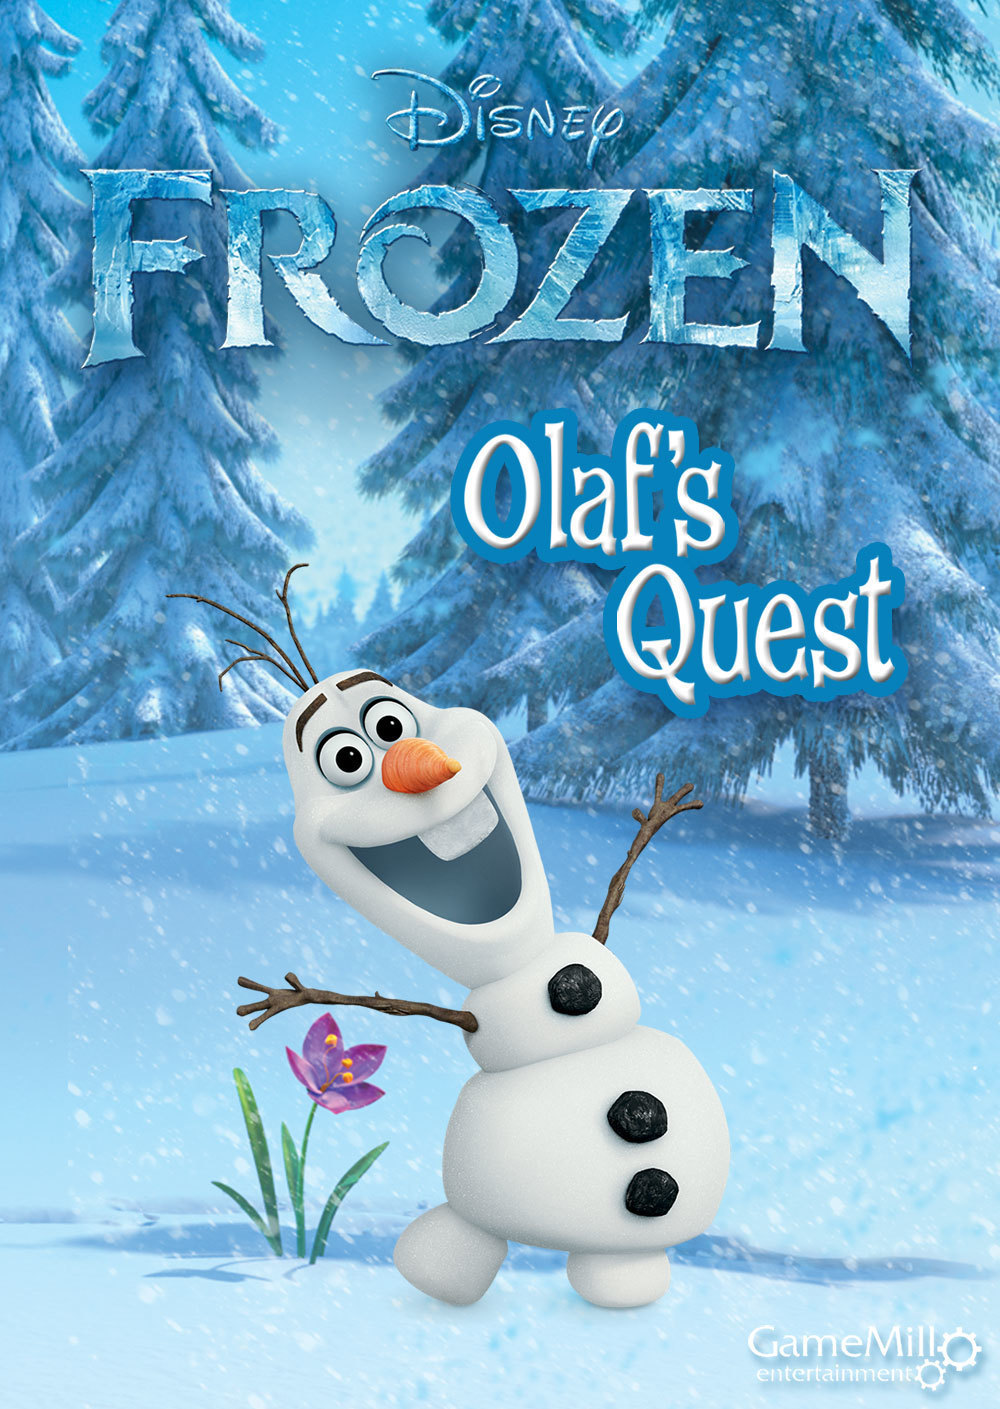 Frozen Poster Olaf Frozen | Official Disn...